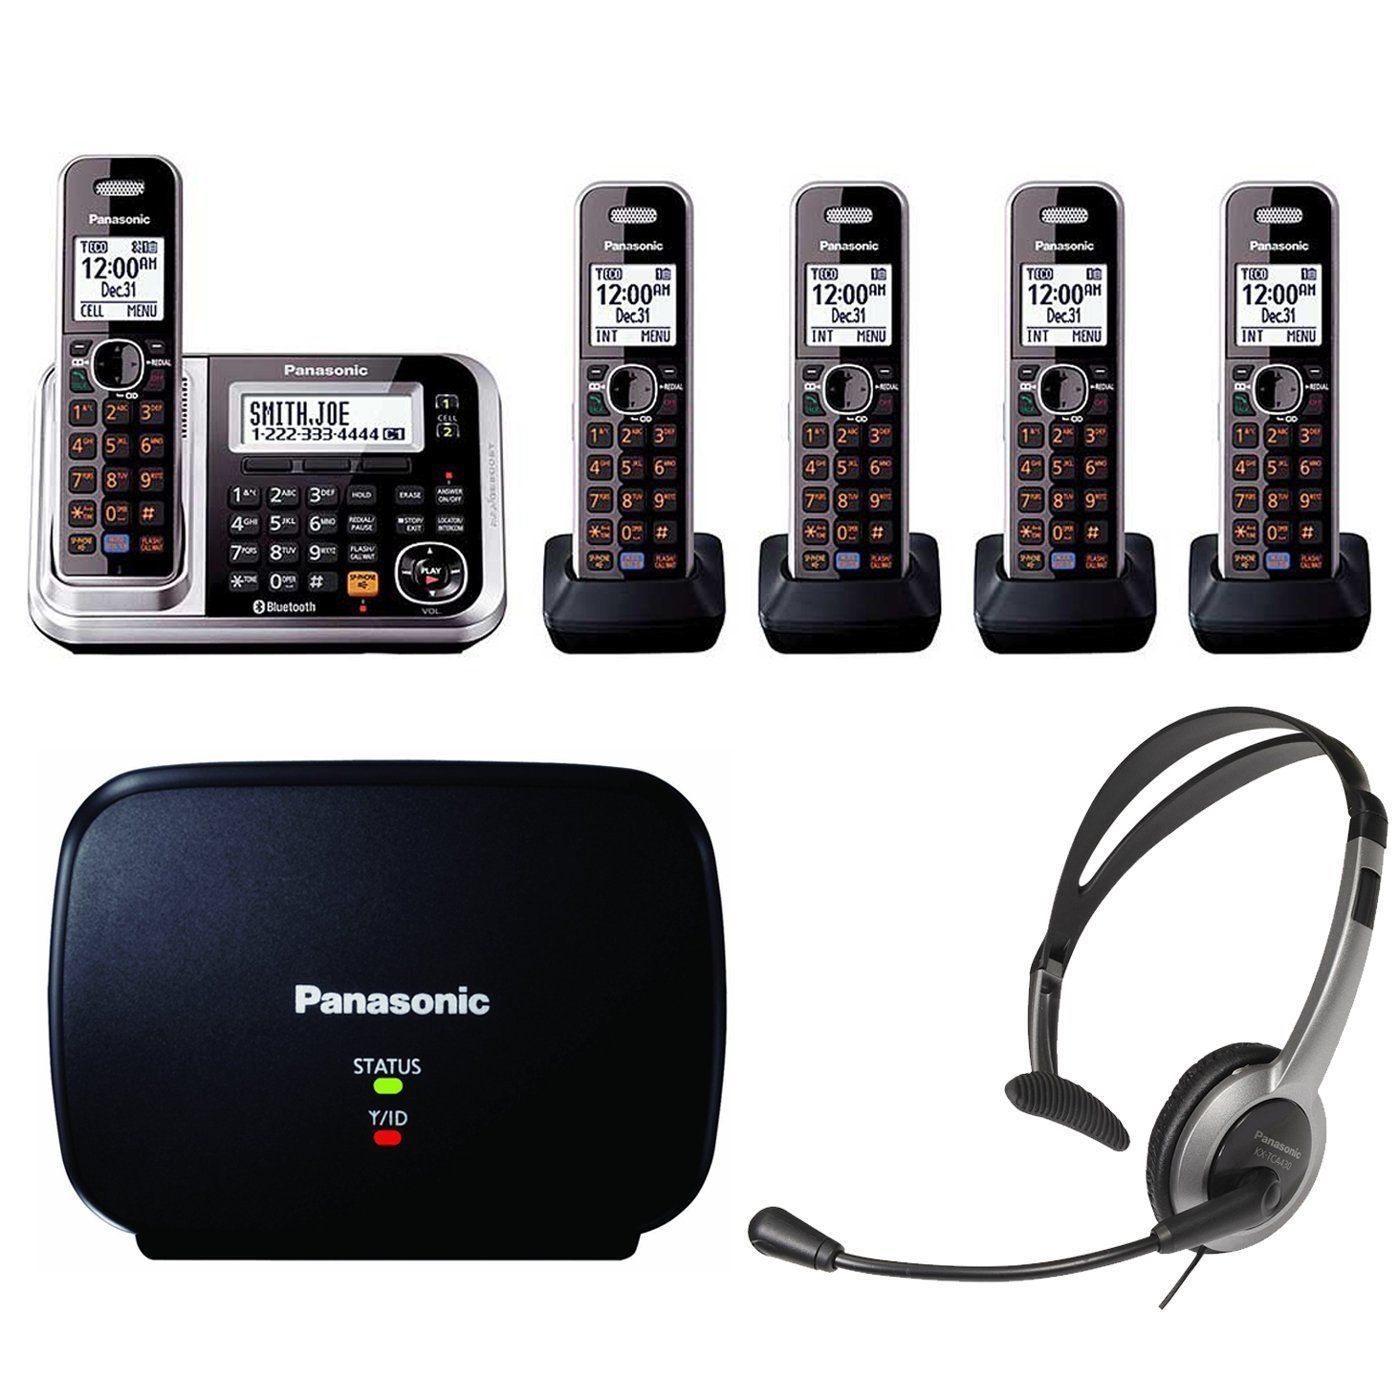 Panasonic Kx Tg7875s Link2cell Bluetooth Enabled Phone Kx Tg680s Cordless Telephone Headset Range Extender Cordless Telephone Bluetooth Phone